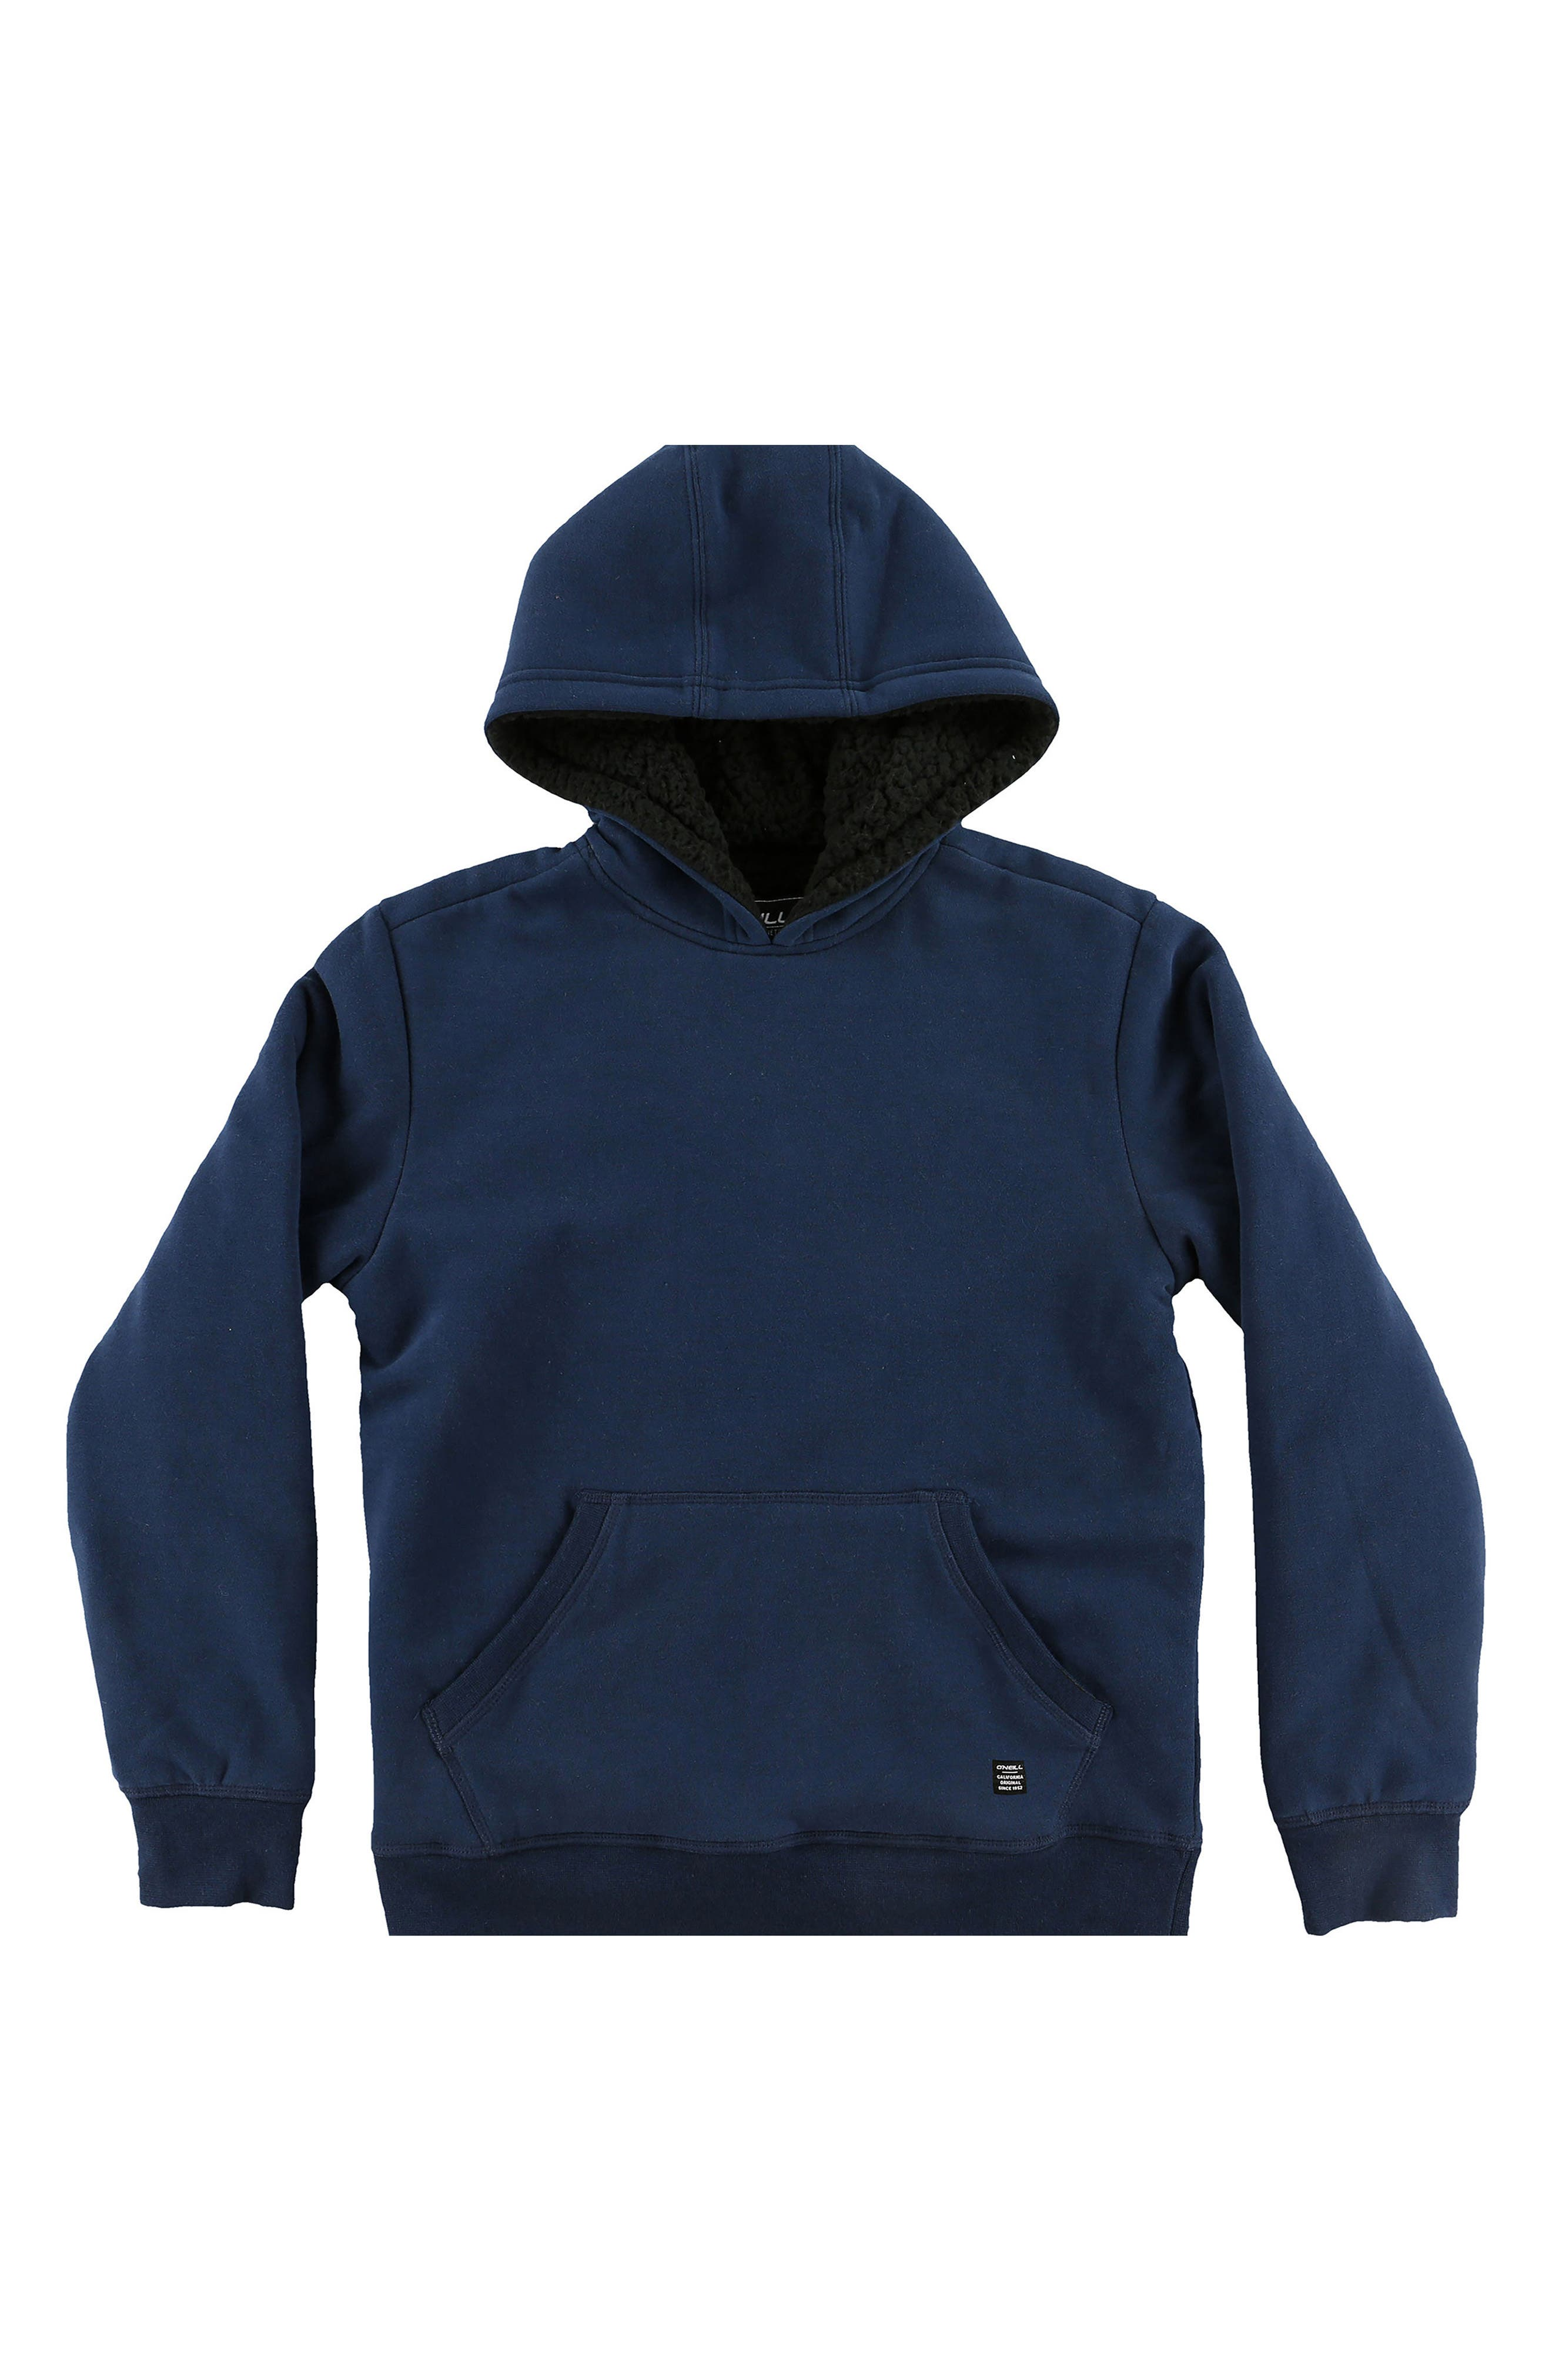 Staple Plush Lined Pullover Hoodie,                             Main thumbnail 1, color,                             Navy